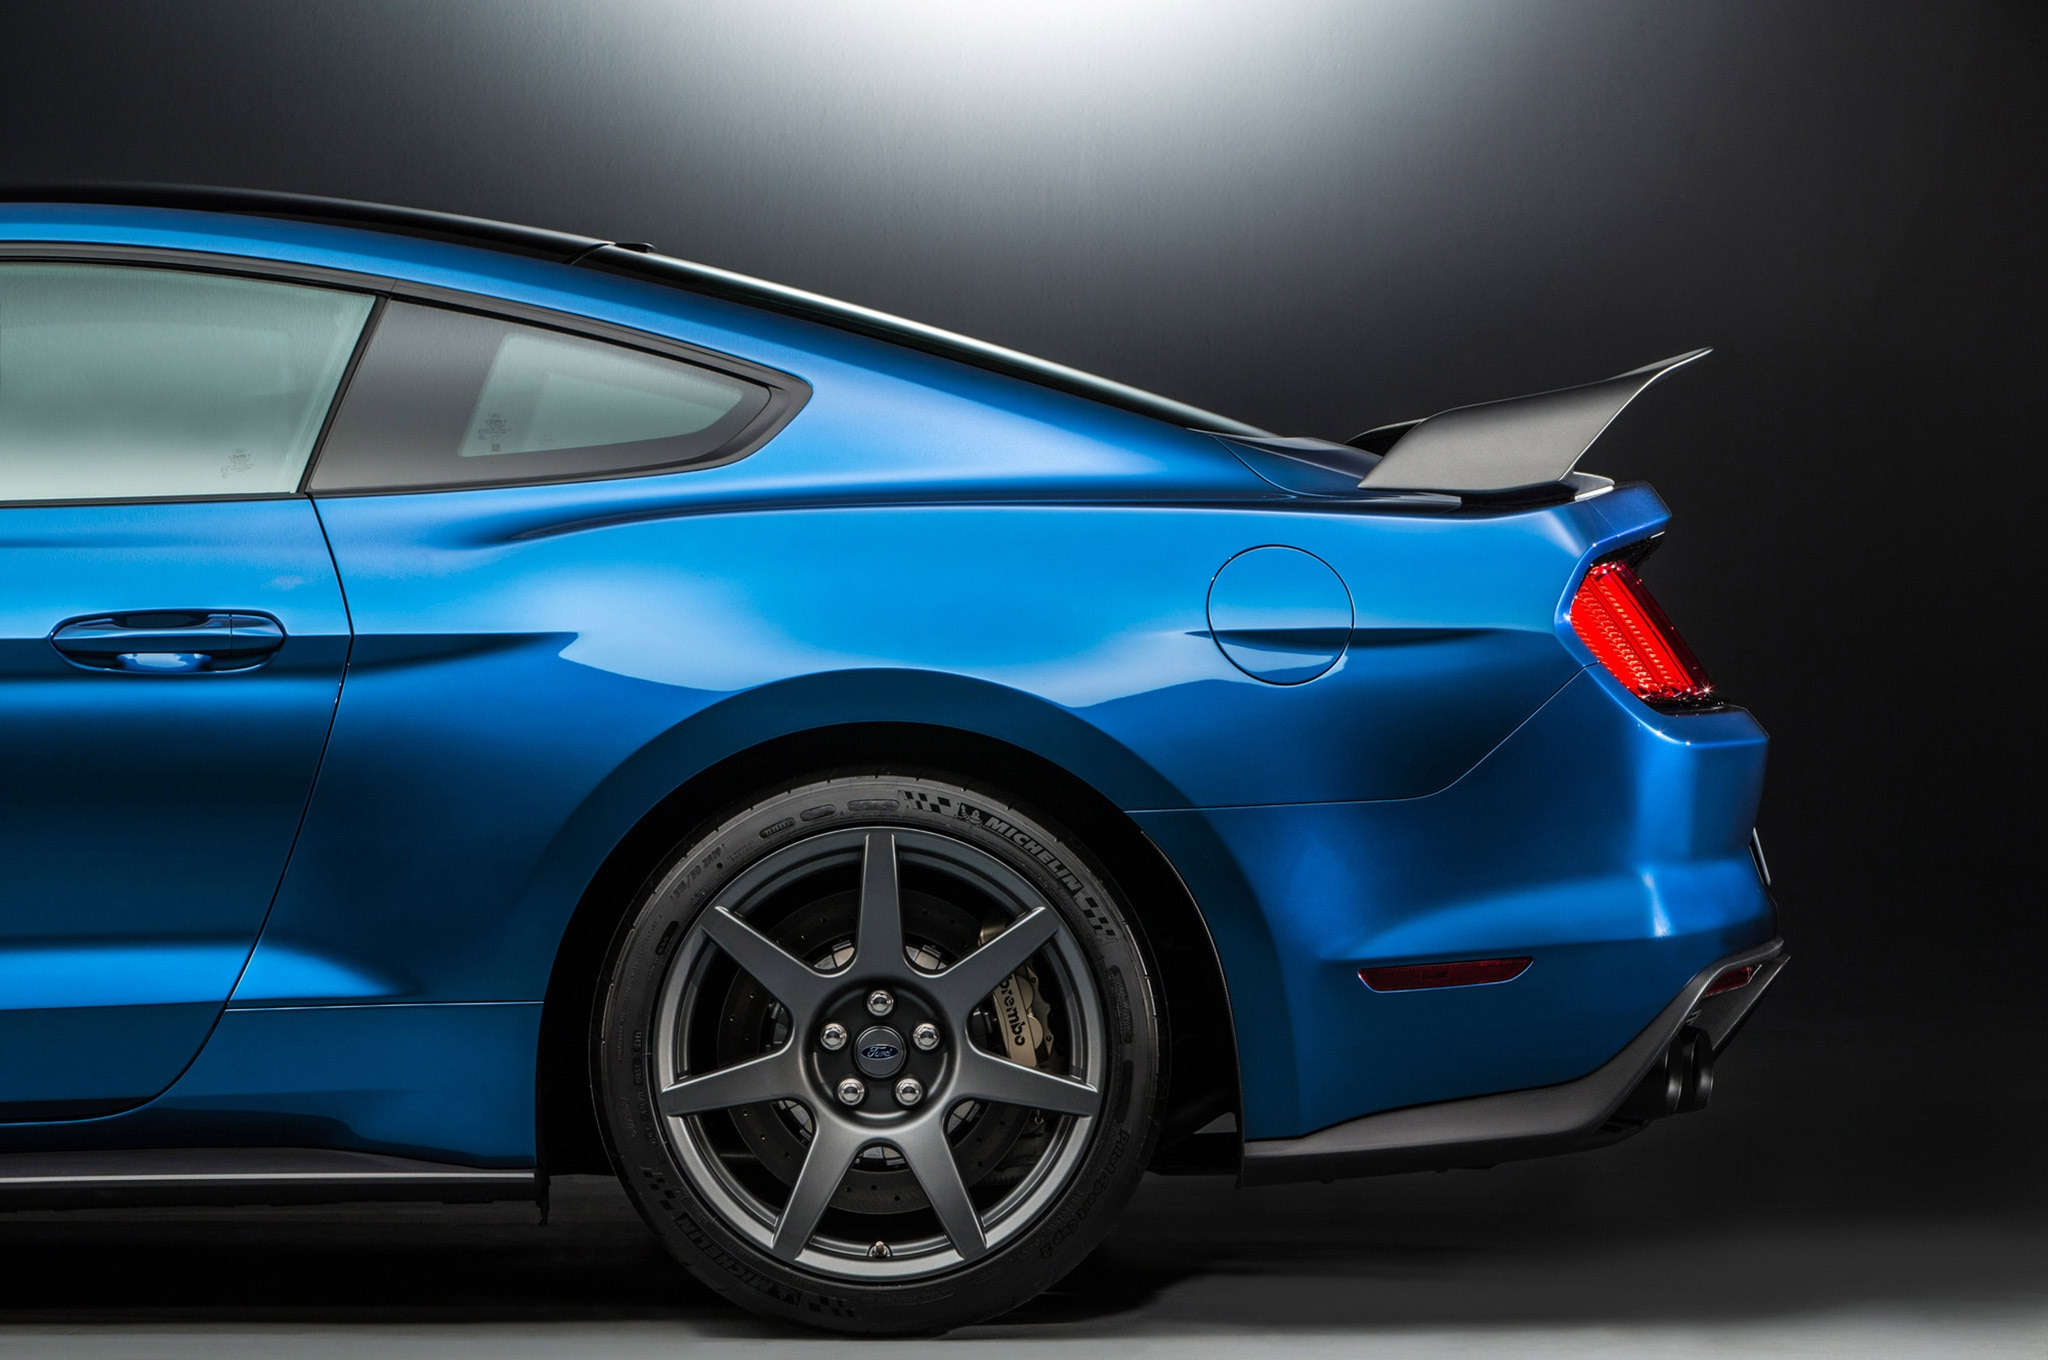 Ford Shelby GT350R Mustang Rear Wheel